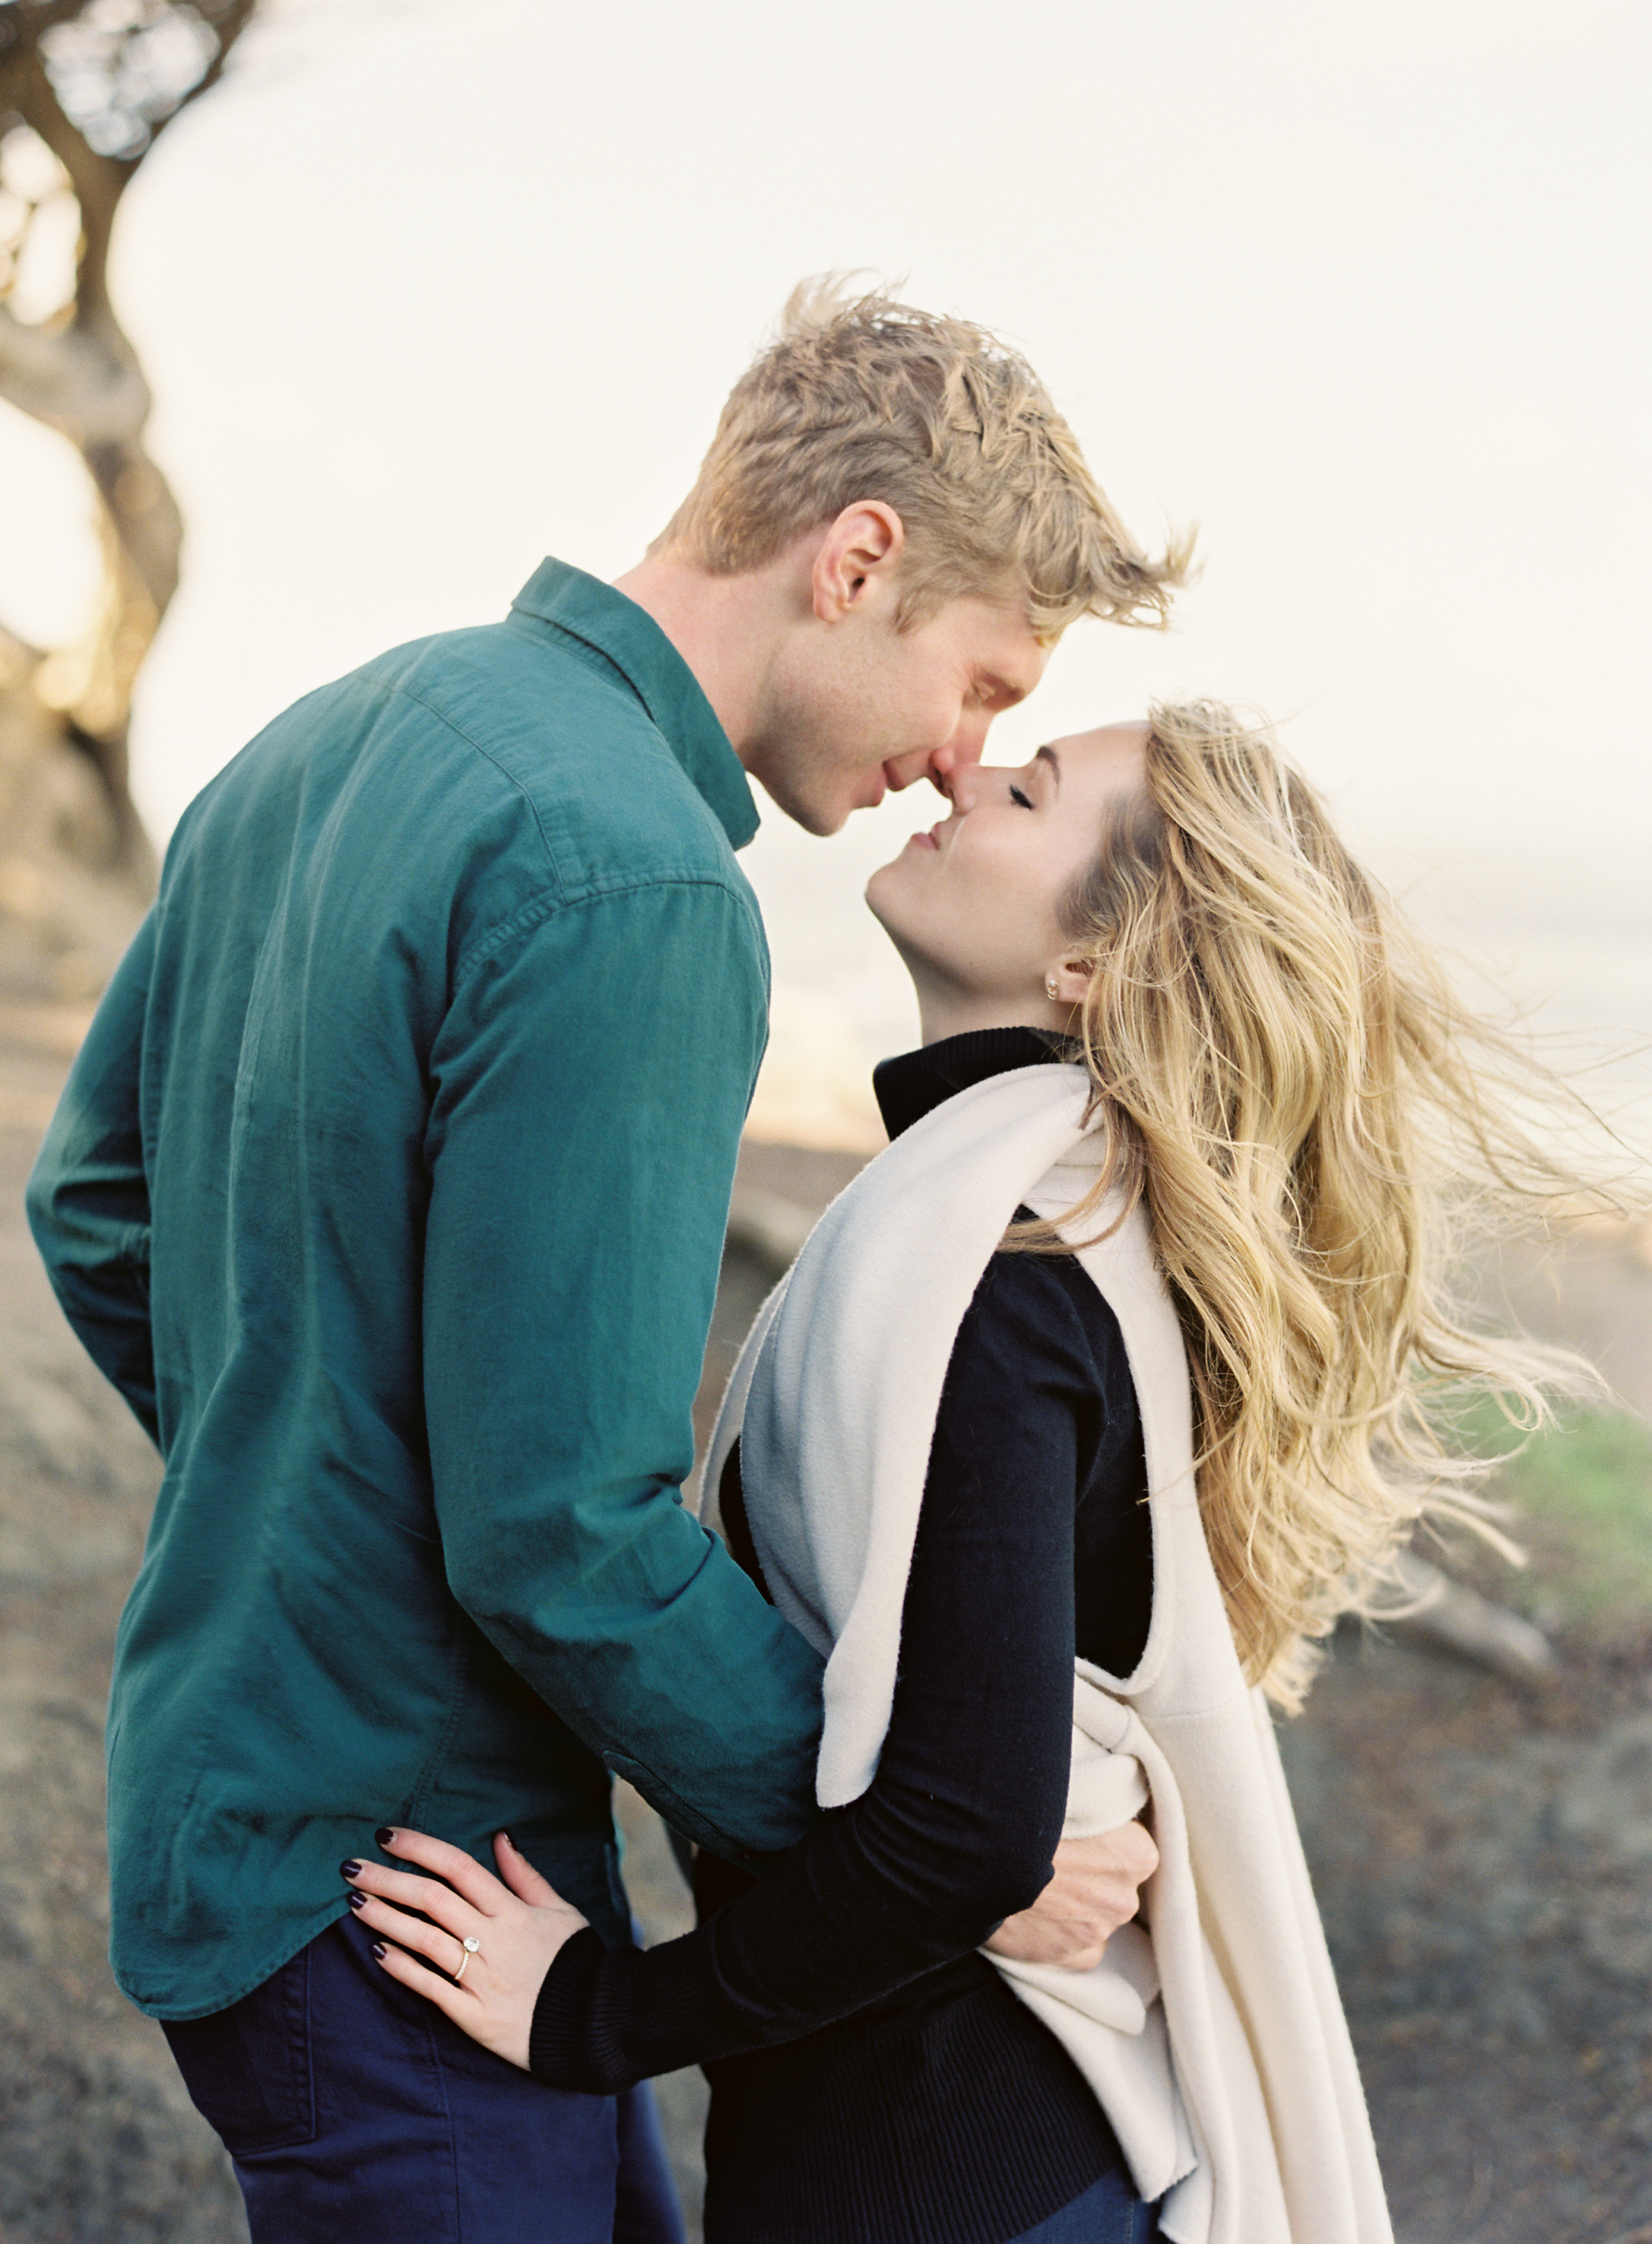 Jessica and Andrew Engagement-Carrie King Photographer-1.jpg